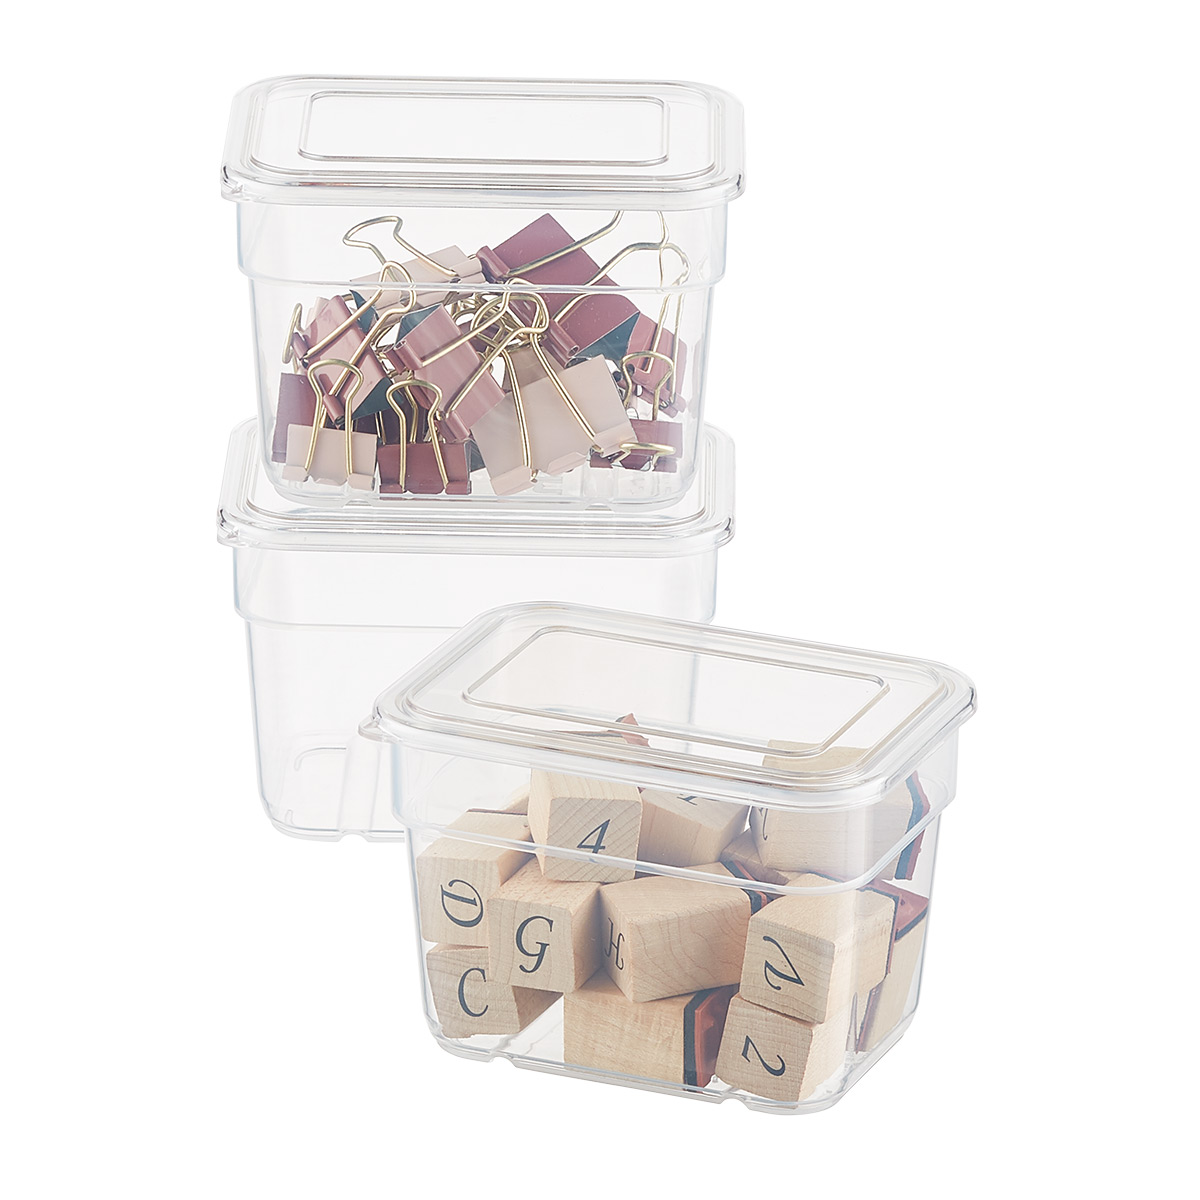 Small ArtBin Storage Bins with Lids